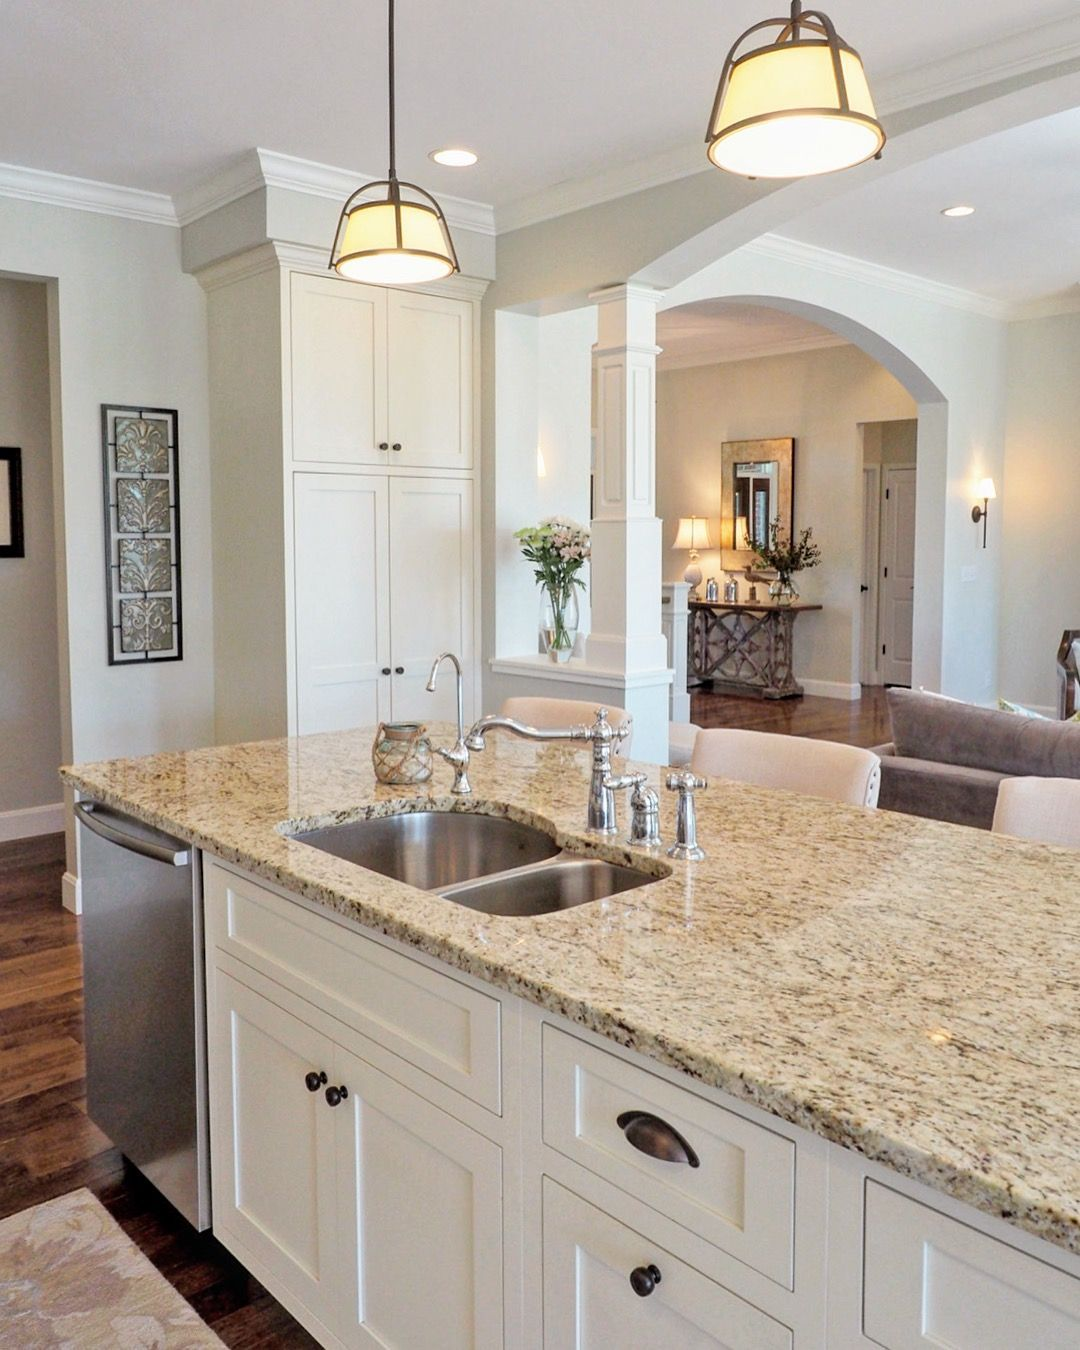 White Kitchen Cabinets And Countertops: Sherwin Williams Conservative Gray